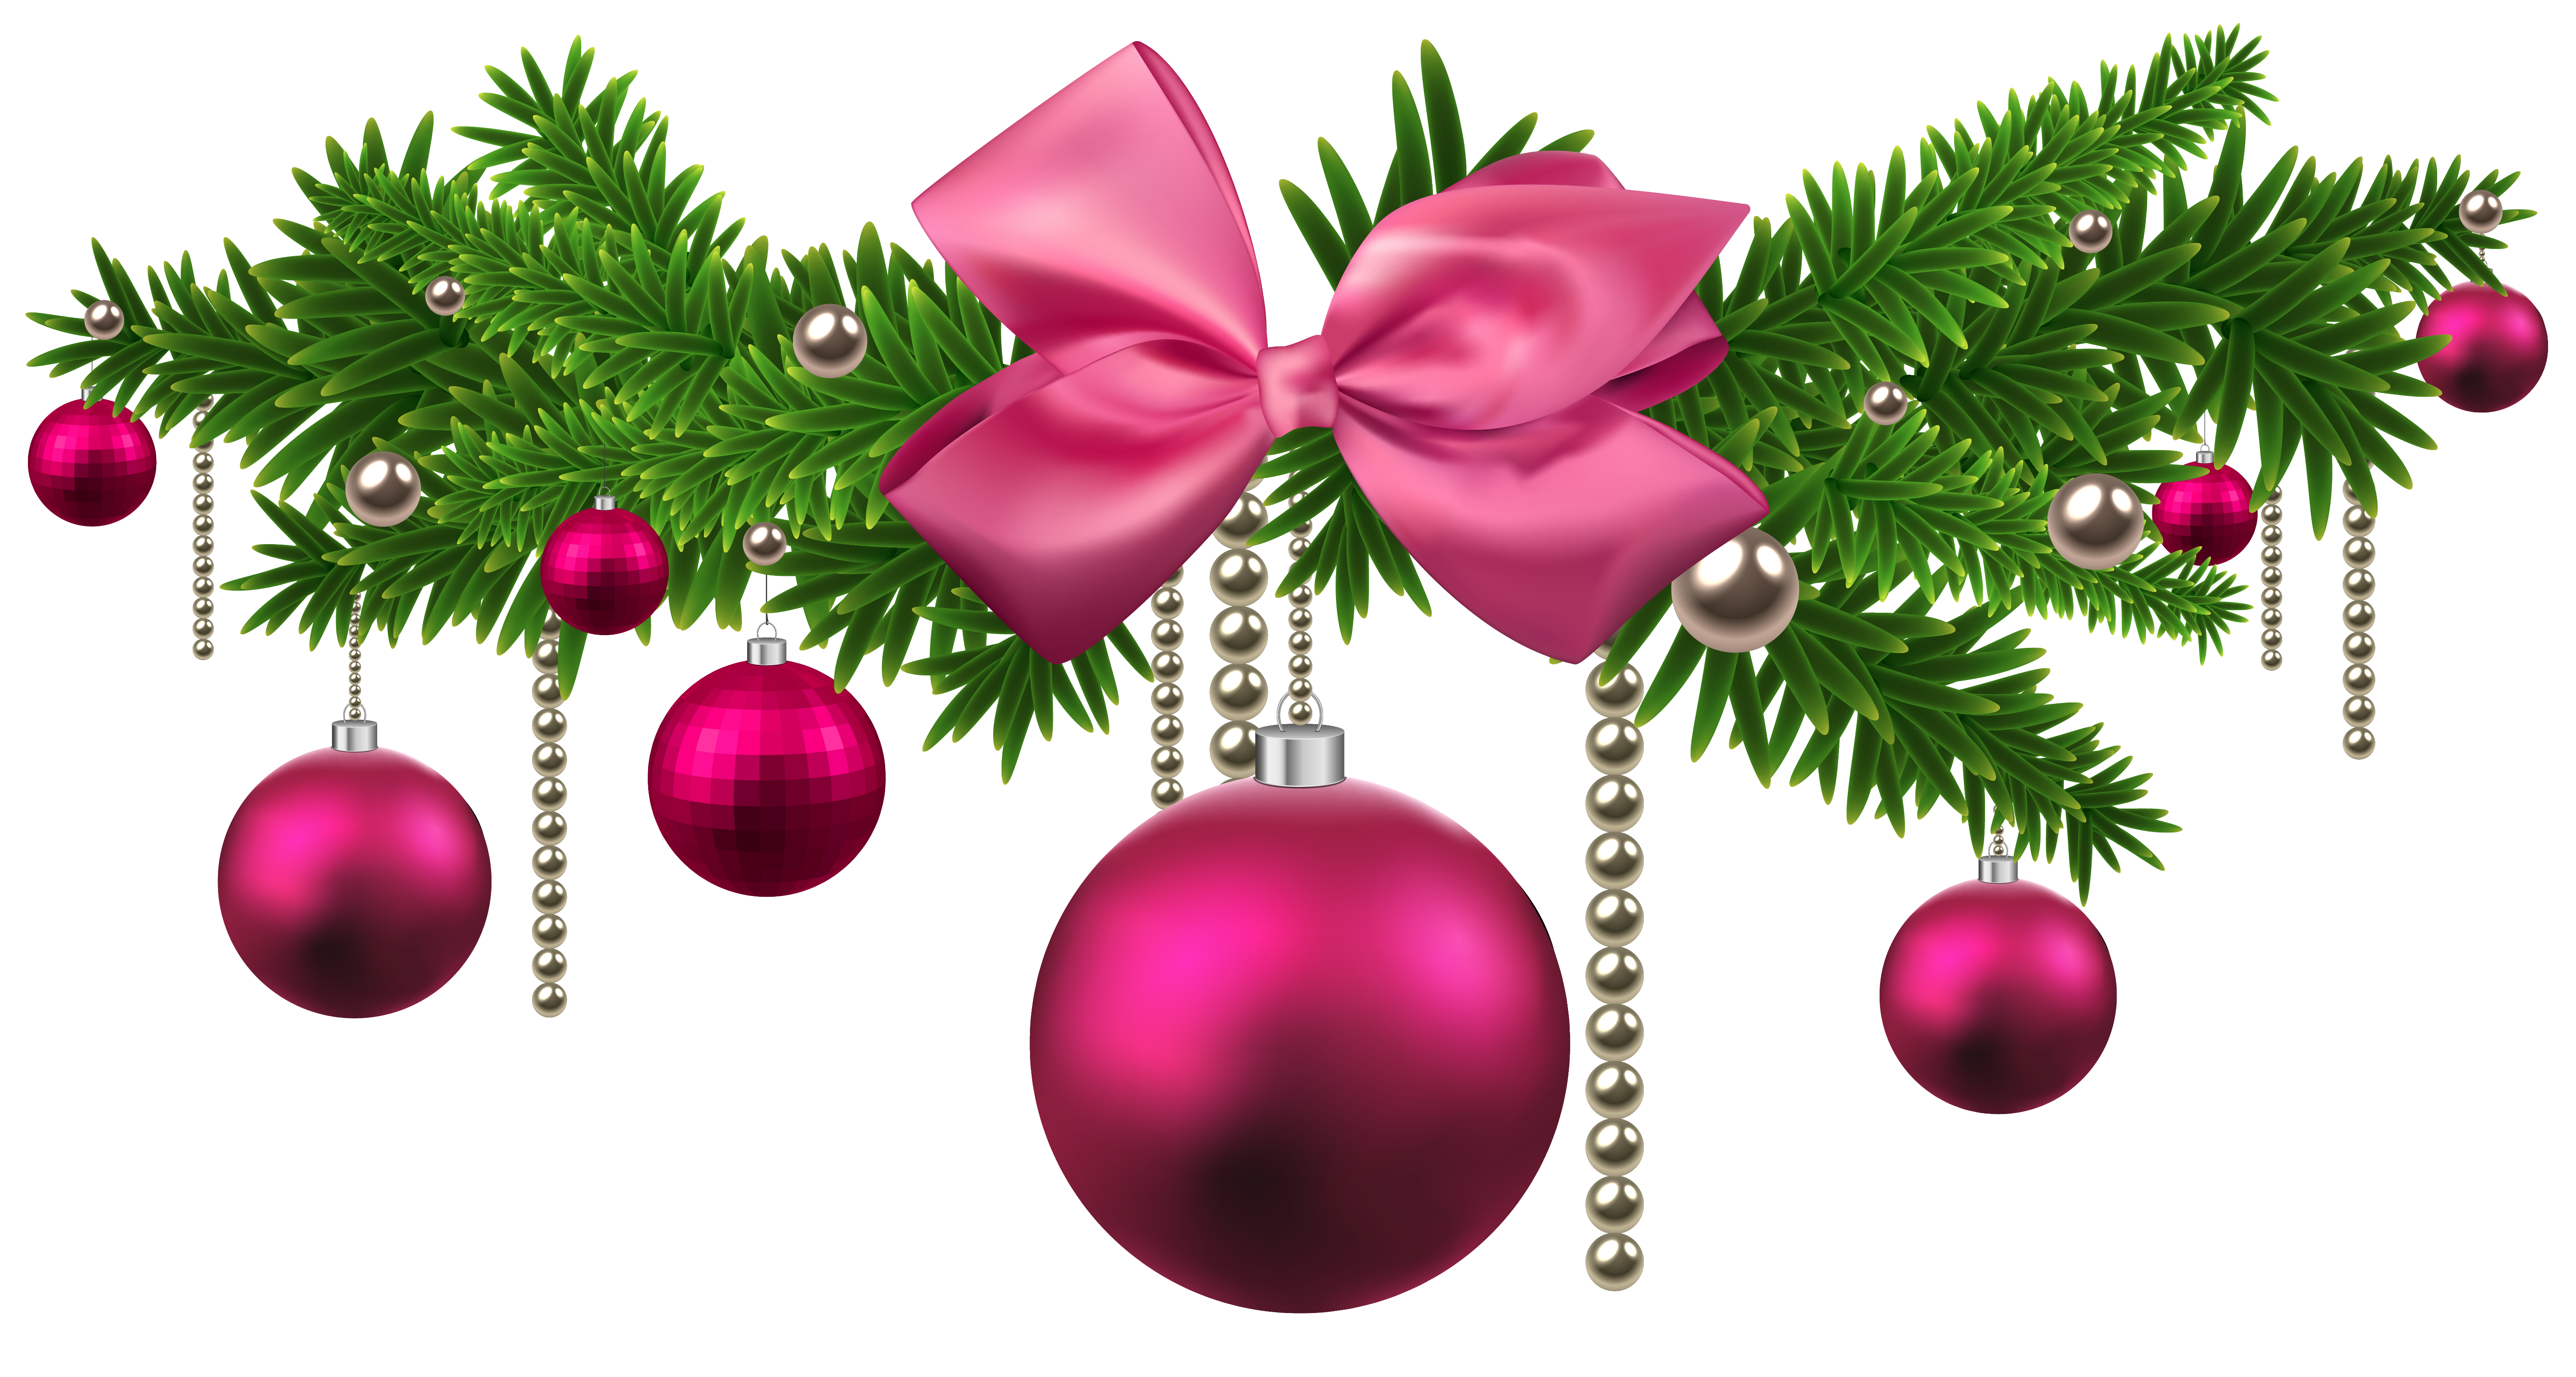 New yeard ornaments png. Pink christmas balls decoration